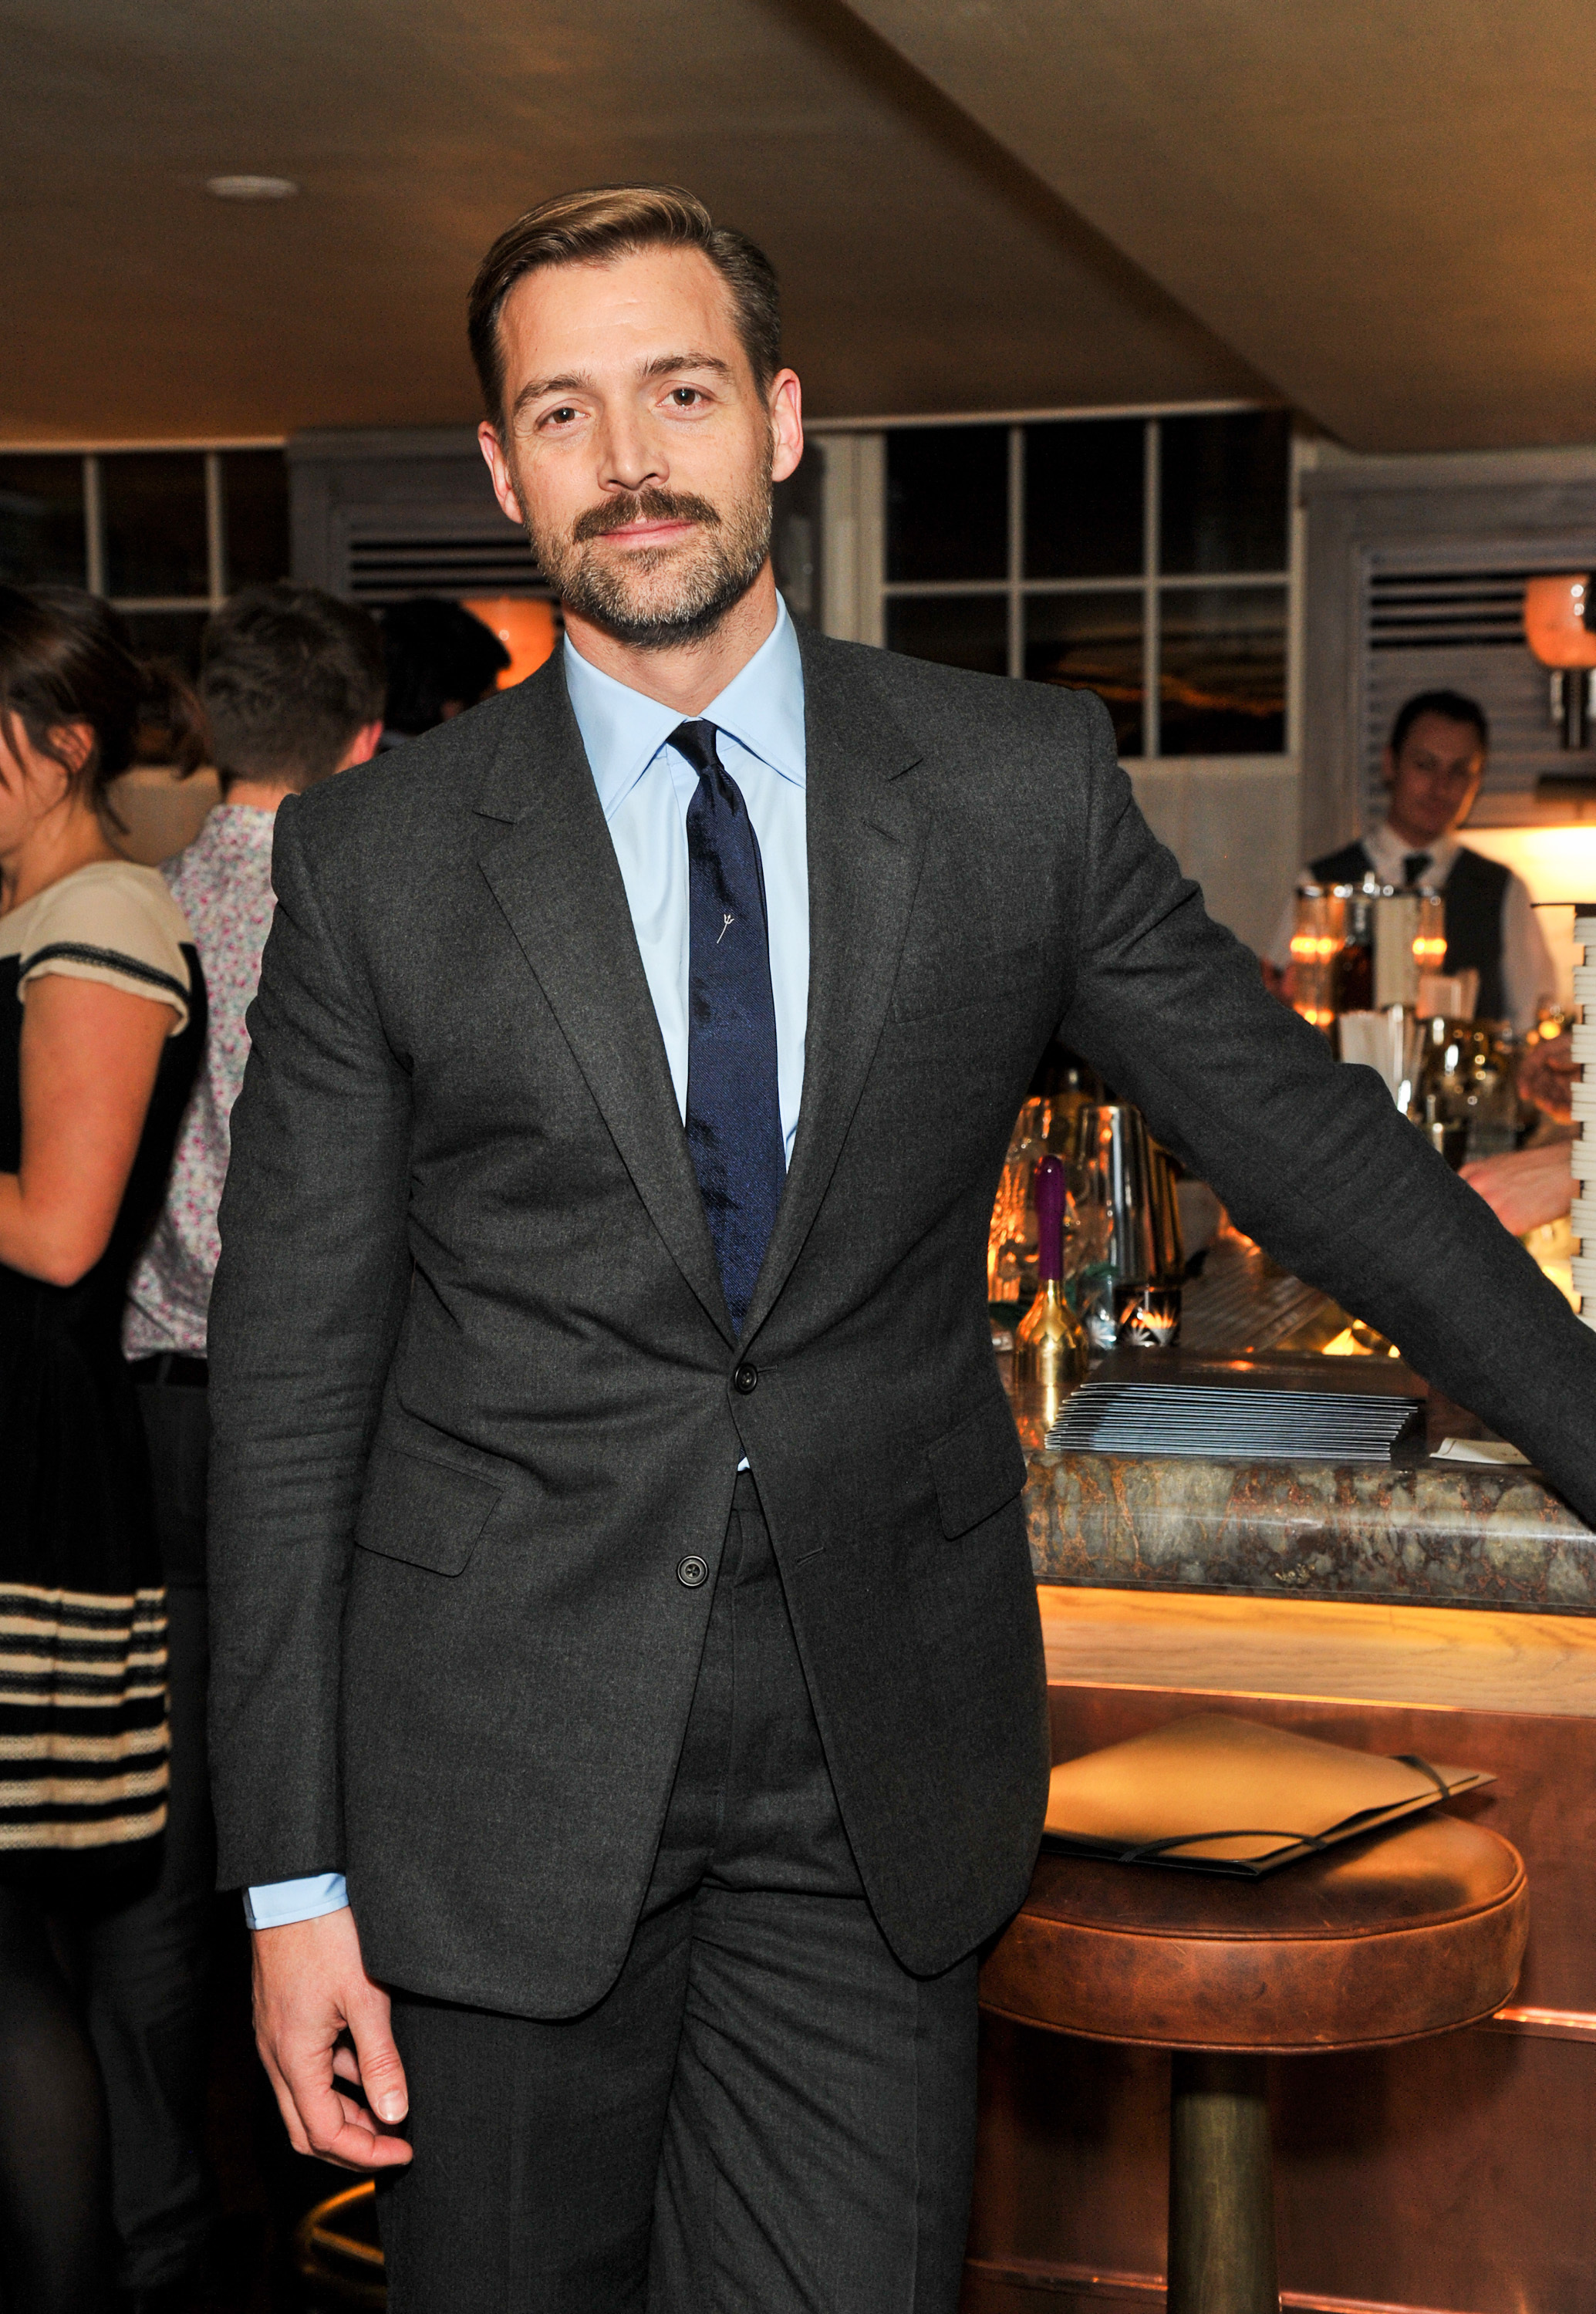 Patrick Grant wearing Charcoal Suit, Light Blue Dress Shirt, Navy ...